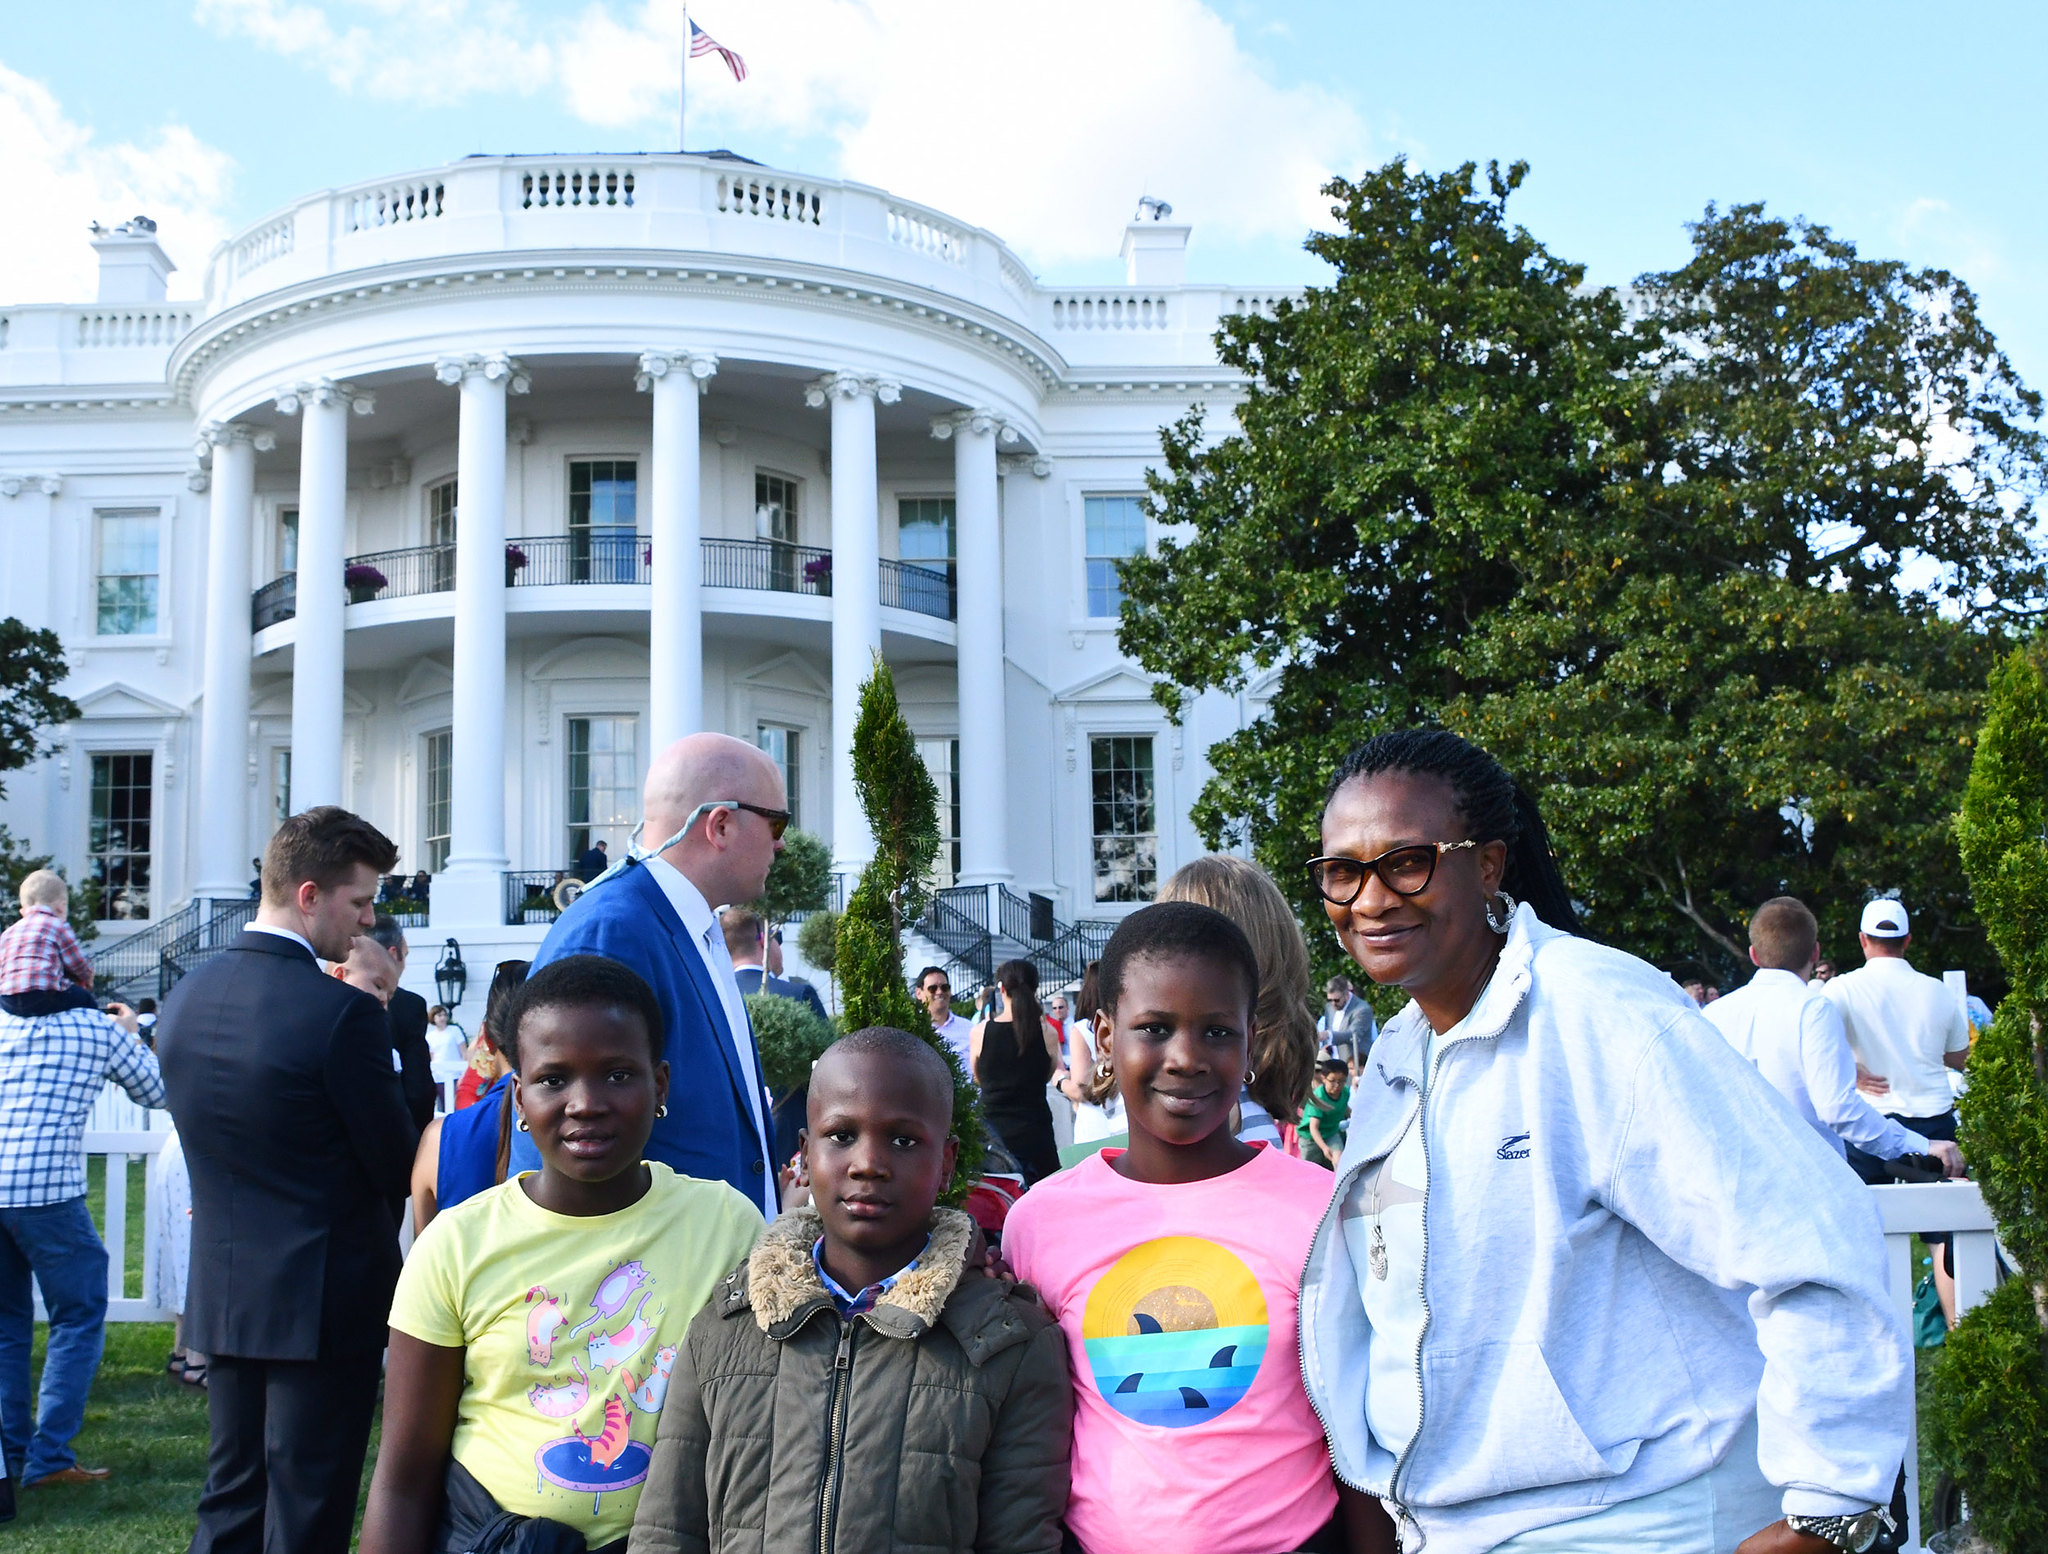 Inn residents at the White House for the annual Easter Egg Roll